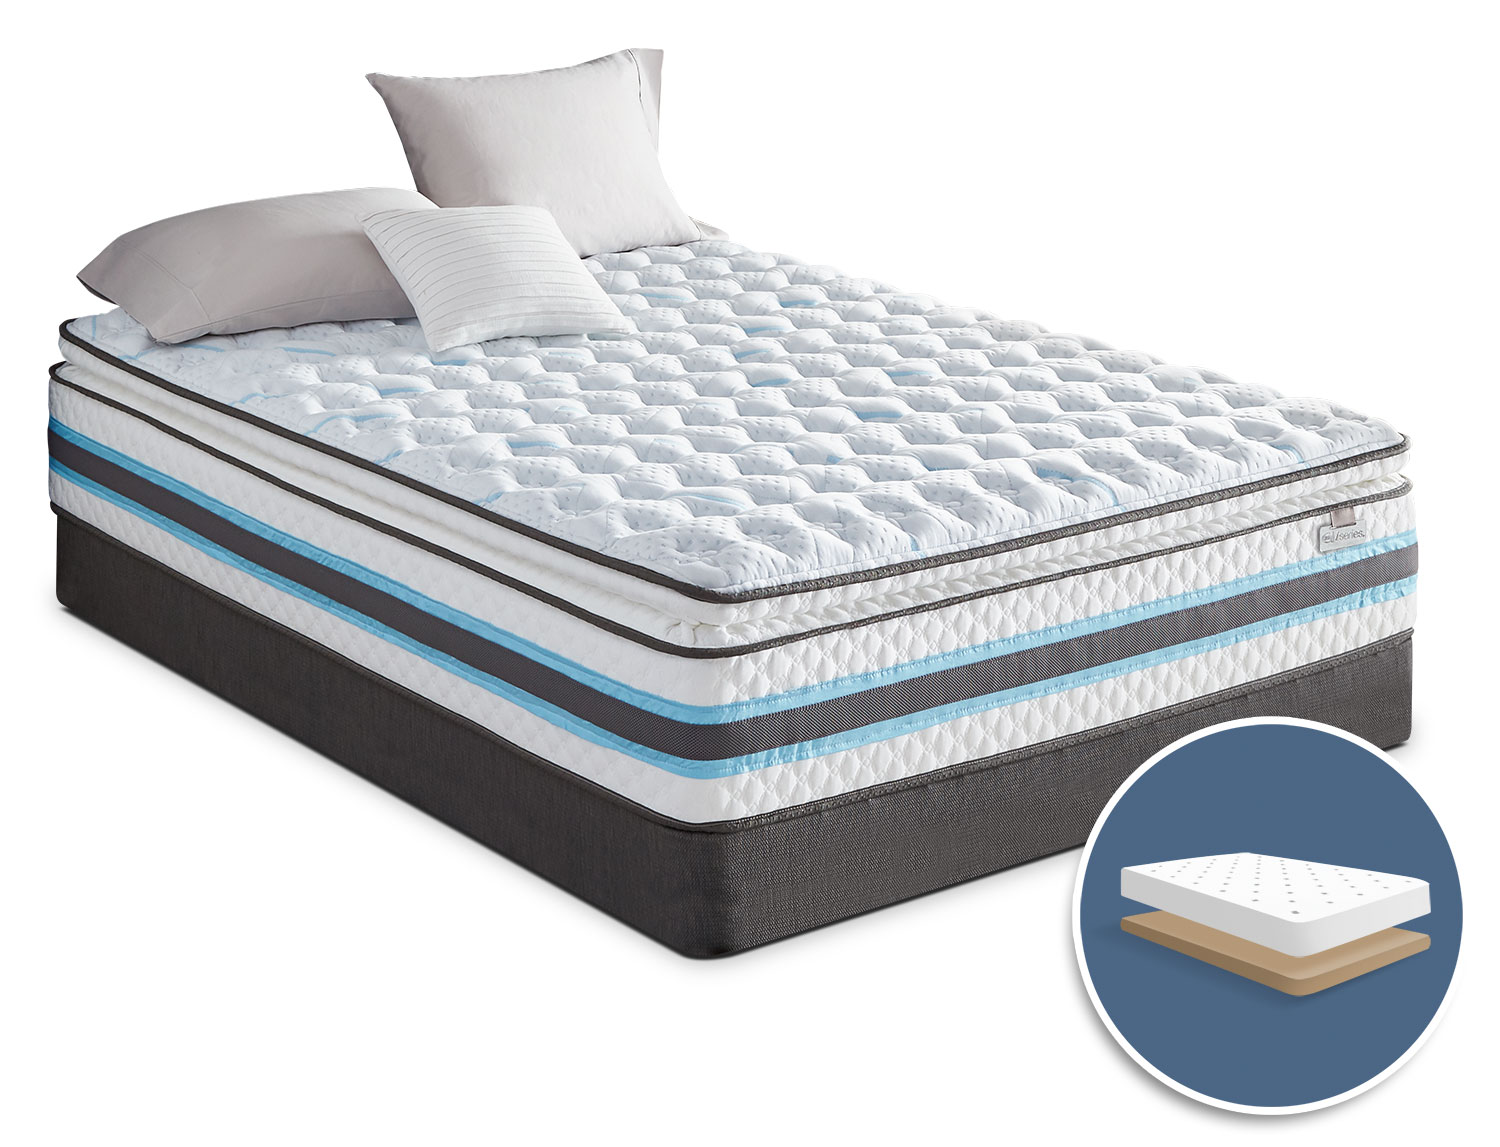 Mattresses and Bedding - Serta iSeries® Breathtaking Pillow-Top Firm Low-Profile Full Mattress Set